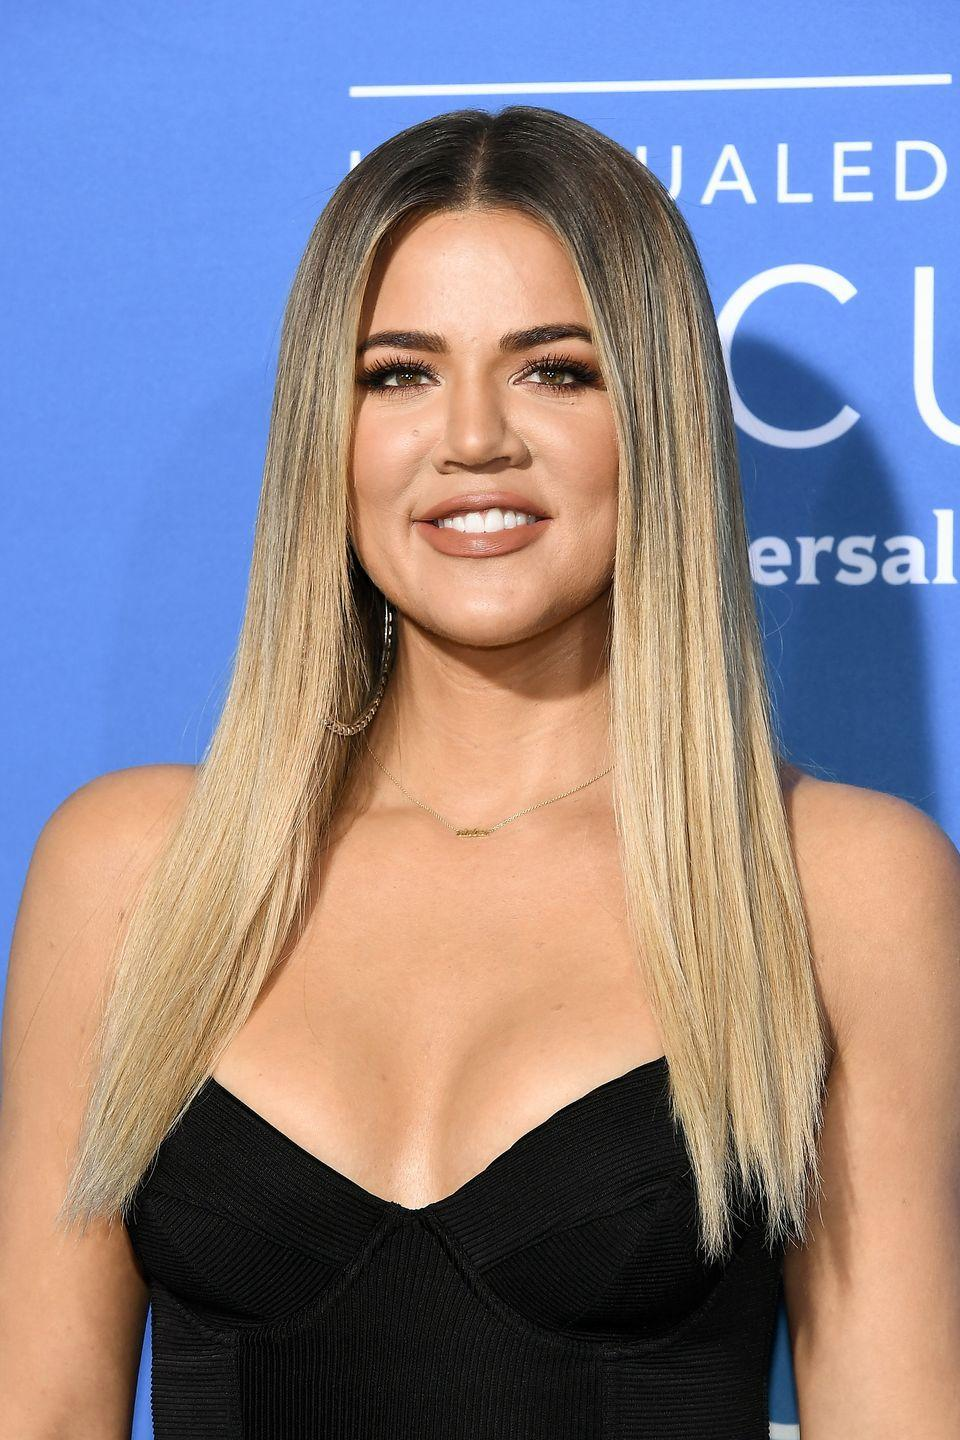 """<p>It's no secret Khloé Kardashian has undergone plastic surgery, but she wasn't entirely happy with her face fillers. She had to get them dissolved because <a href=""""https://youtu.be/yA-G2AjQEbY?t=66"""" rel=""""nofollow noopener"""" target=""""_blank"""" data-ylk=""""slk:she said they made her look 'crazy"""" class=""""link rapid-noclick-resp"""">she said they made her look 'crazy</a>.'</p>"""